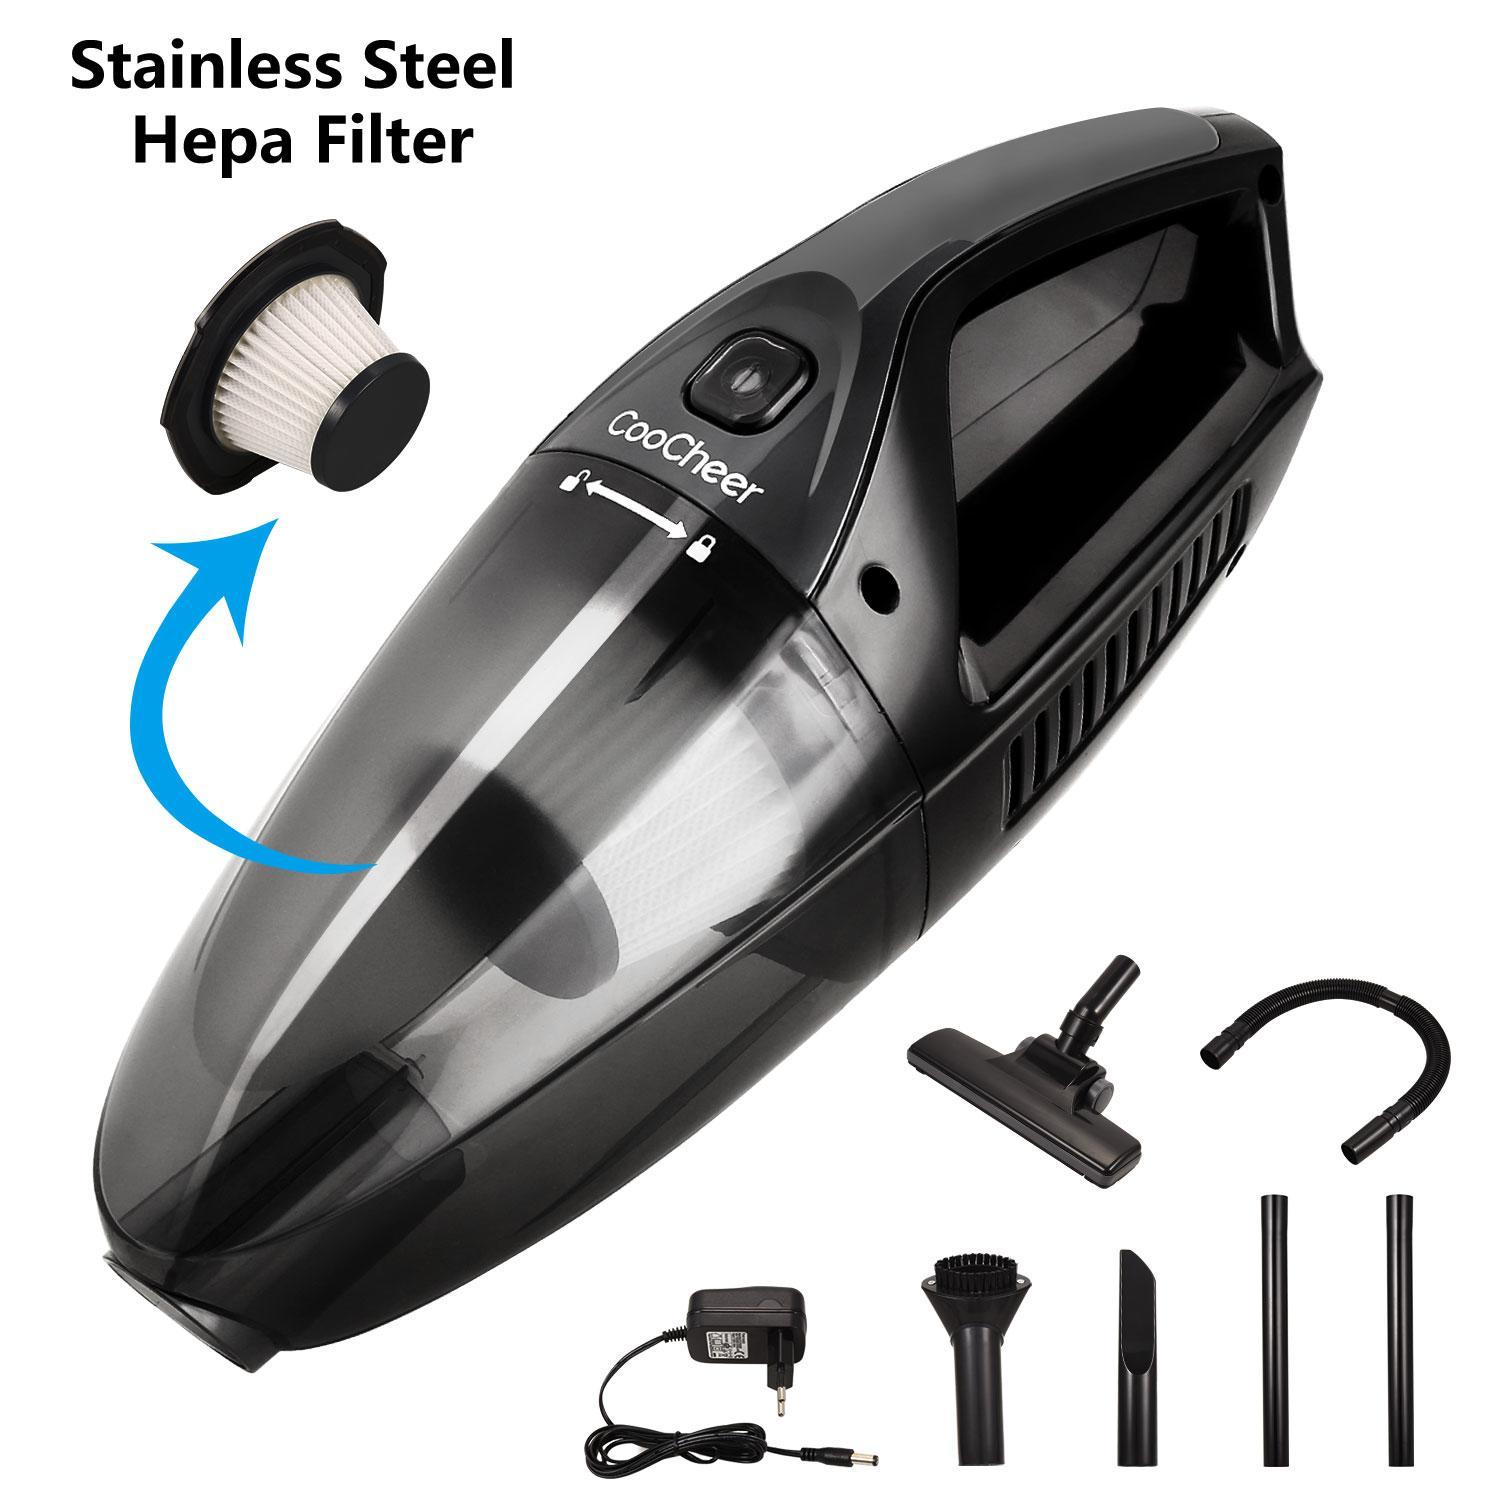 Portable Cordless Handheld Vacuum Cleaner Dustbuster for Home Office Auto Car BTC